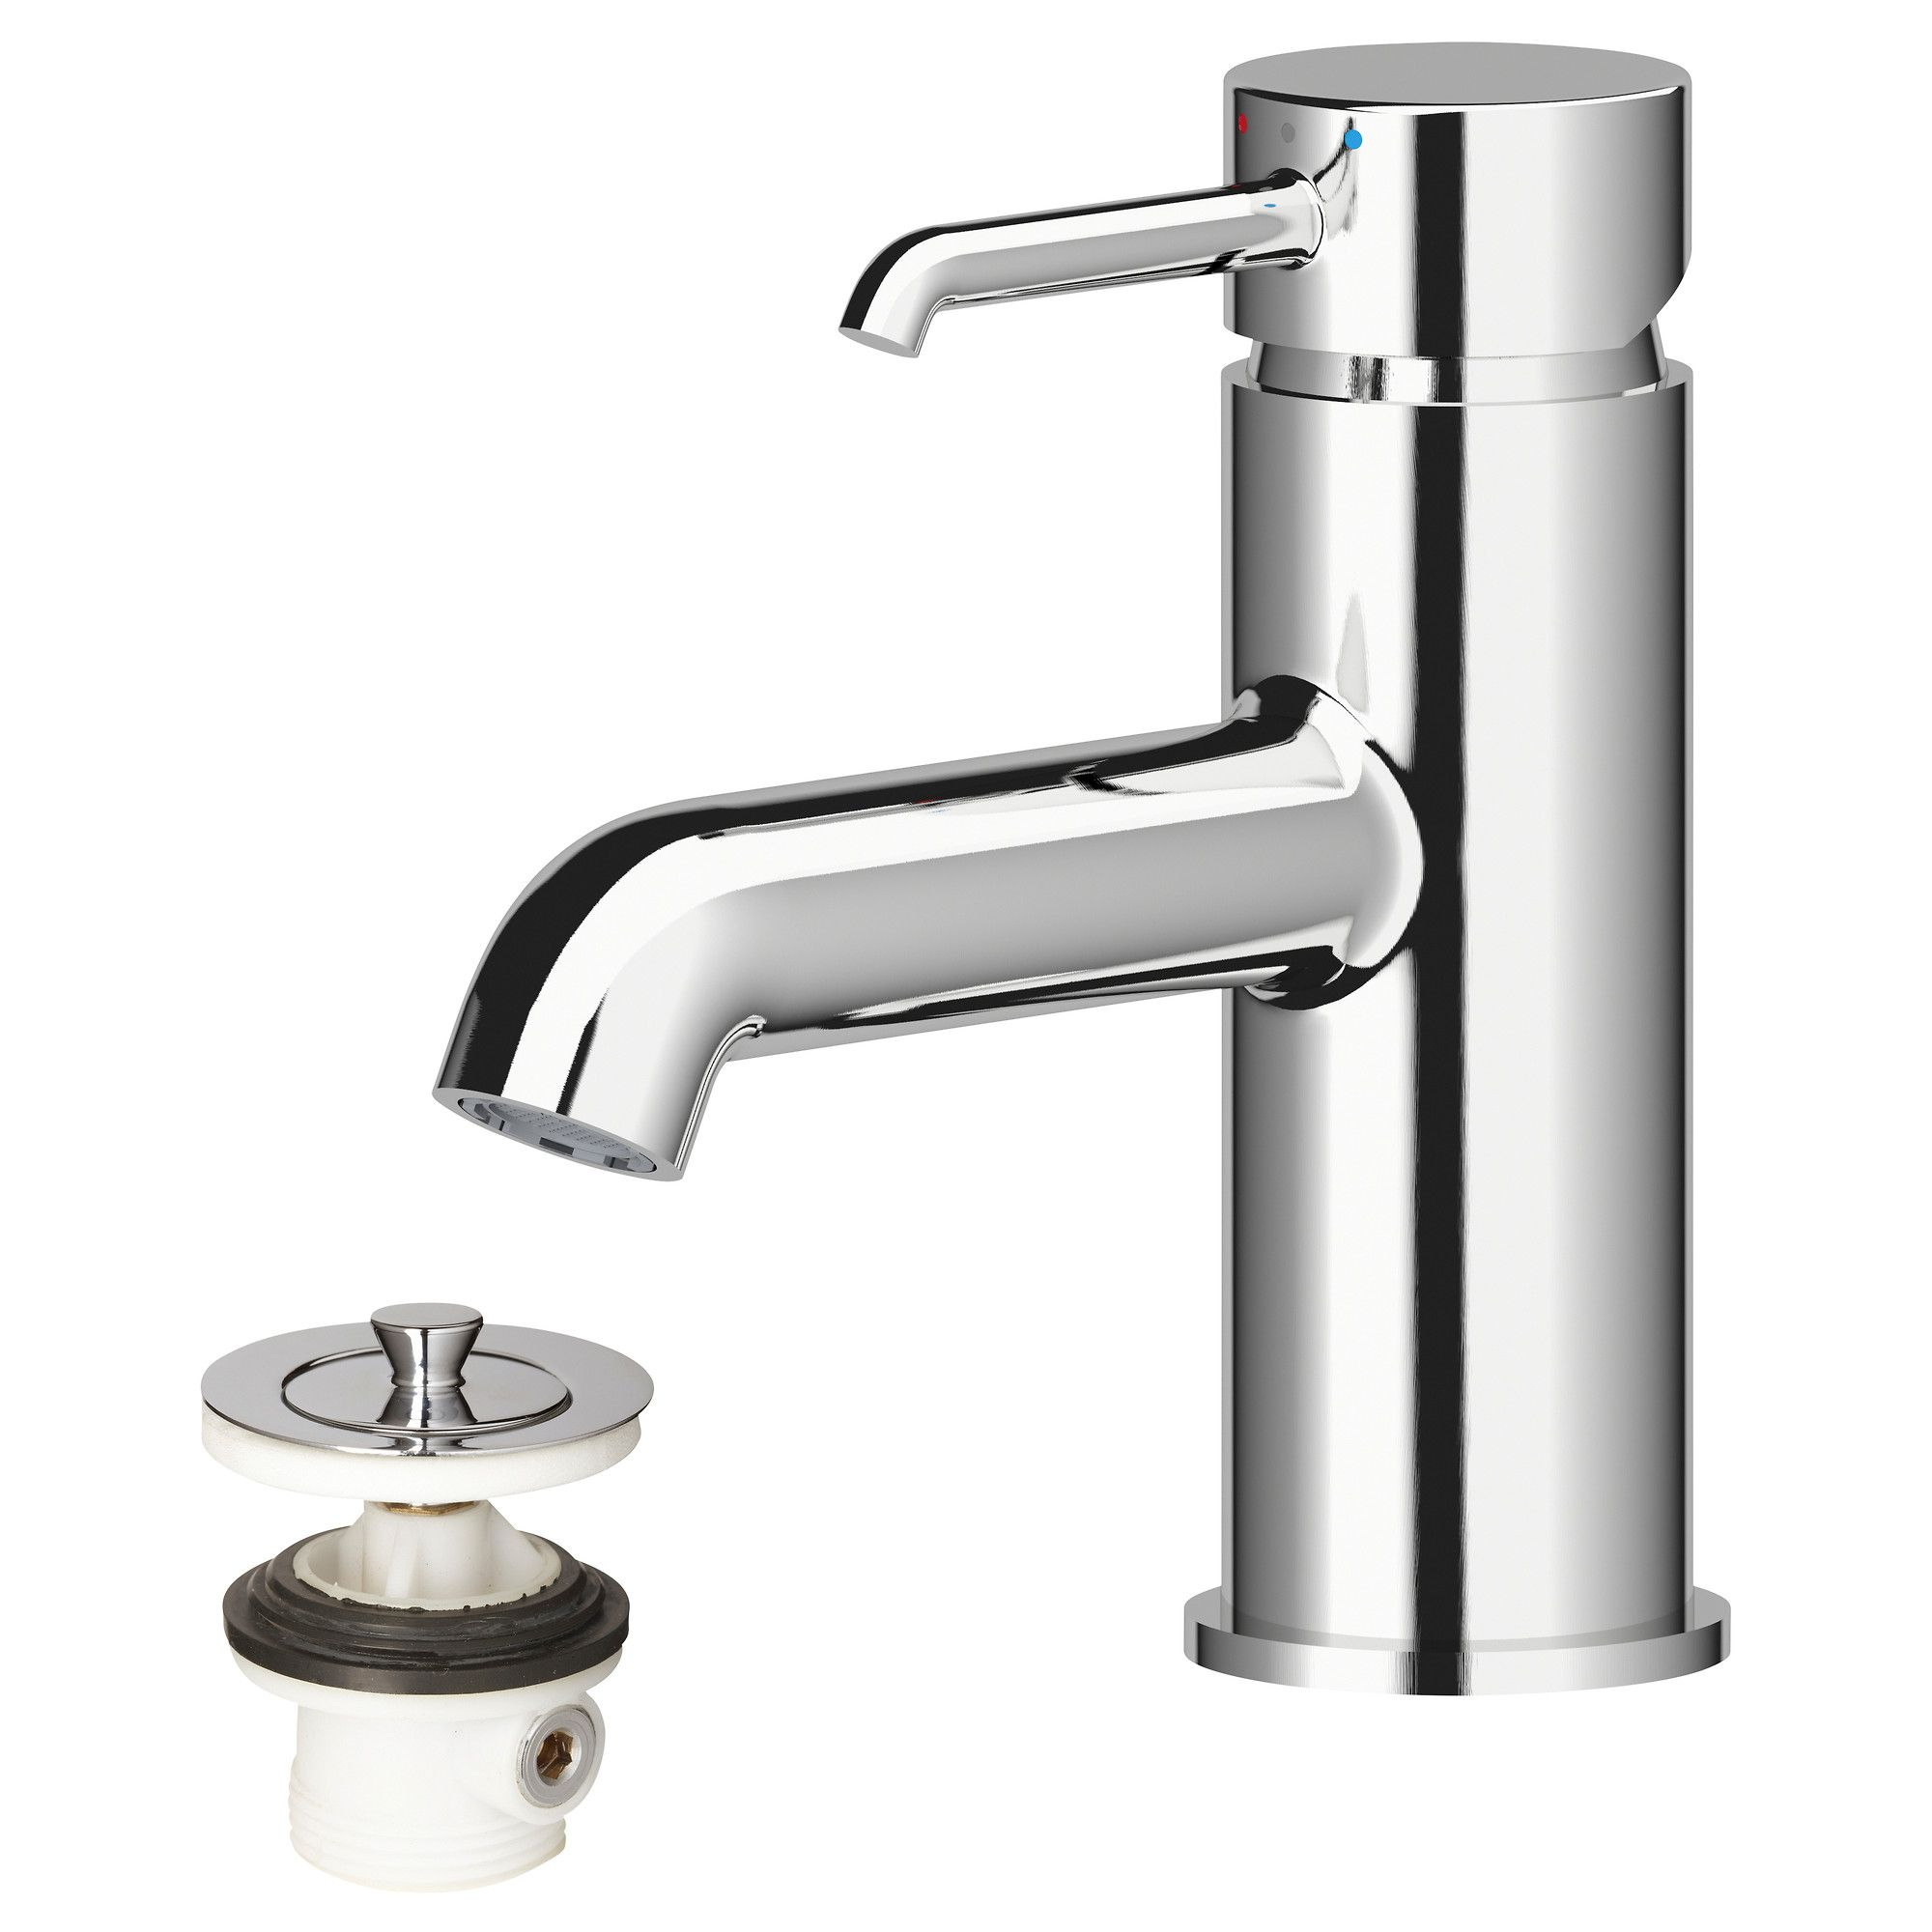 DANNSKÄR Bath faucet with strainer - IKEA | Nice Bathroom ...